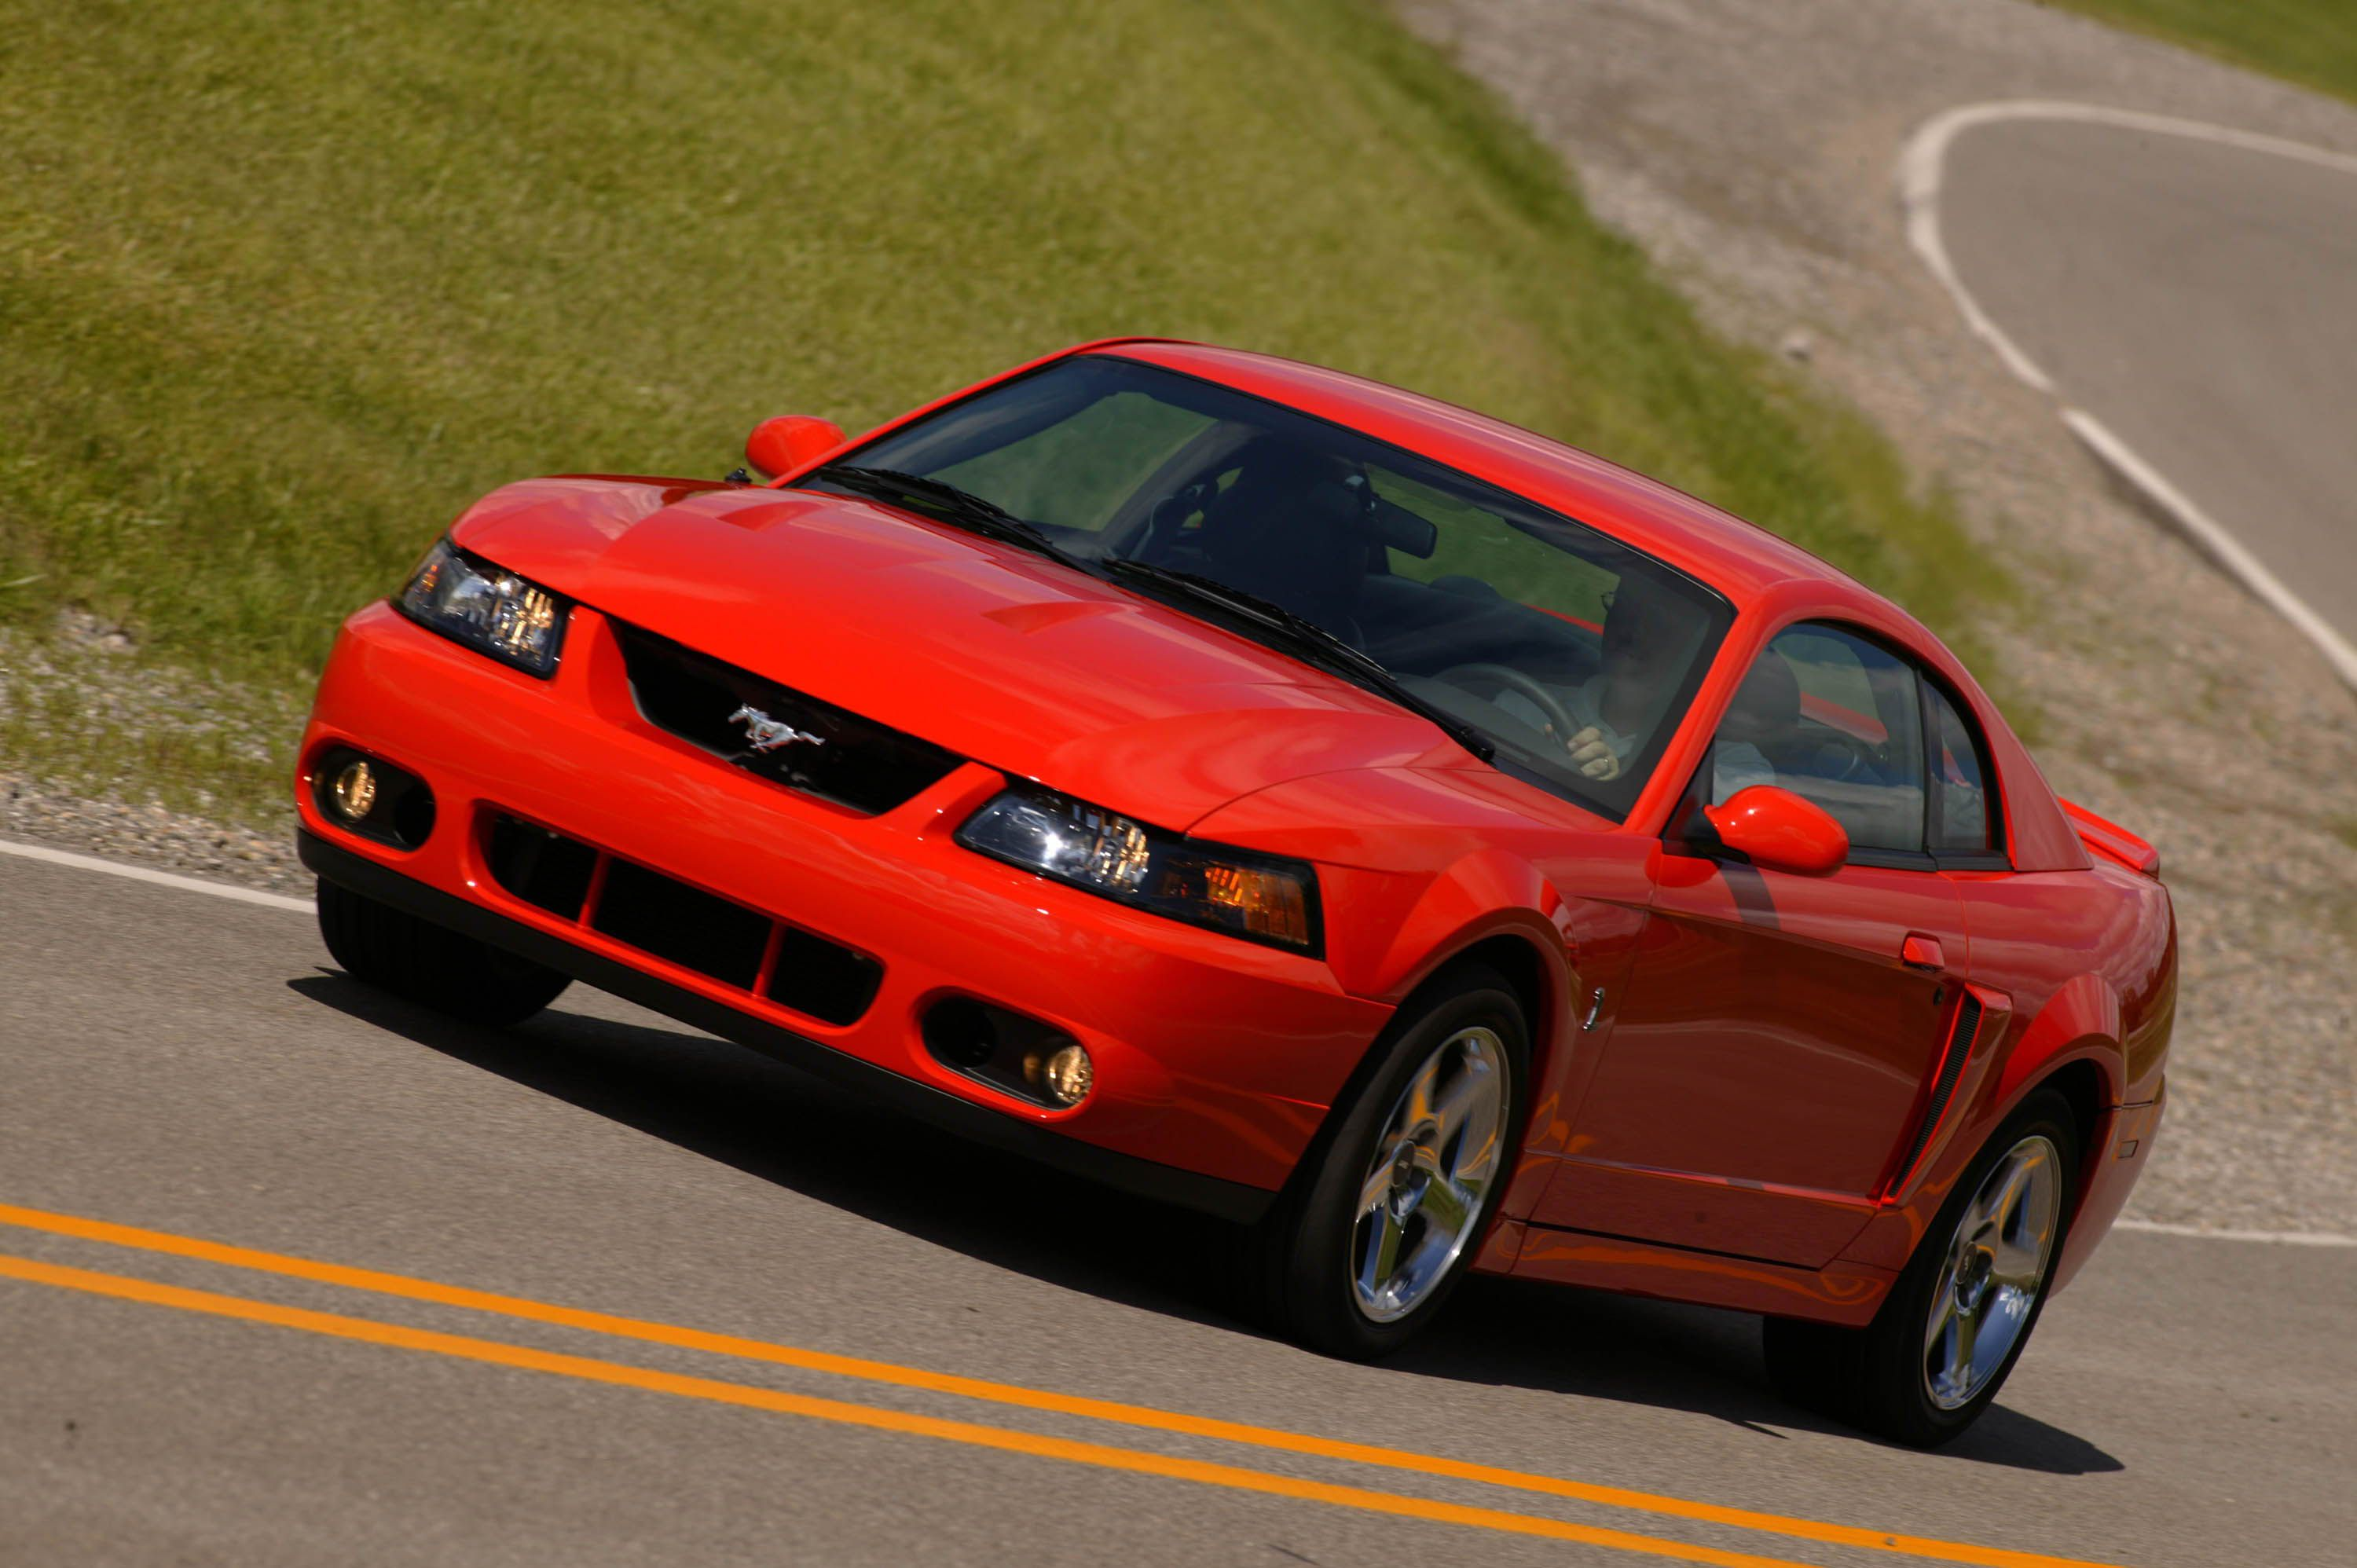 2004 Mustang Svt Cobra In 2020 2004 Ford Mustang Ford Mustang Cobra Ford Mustang